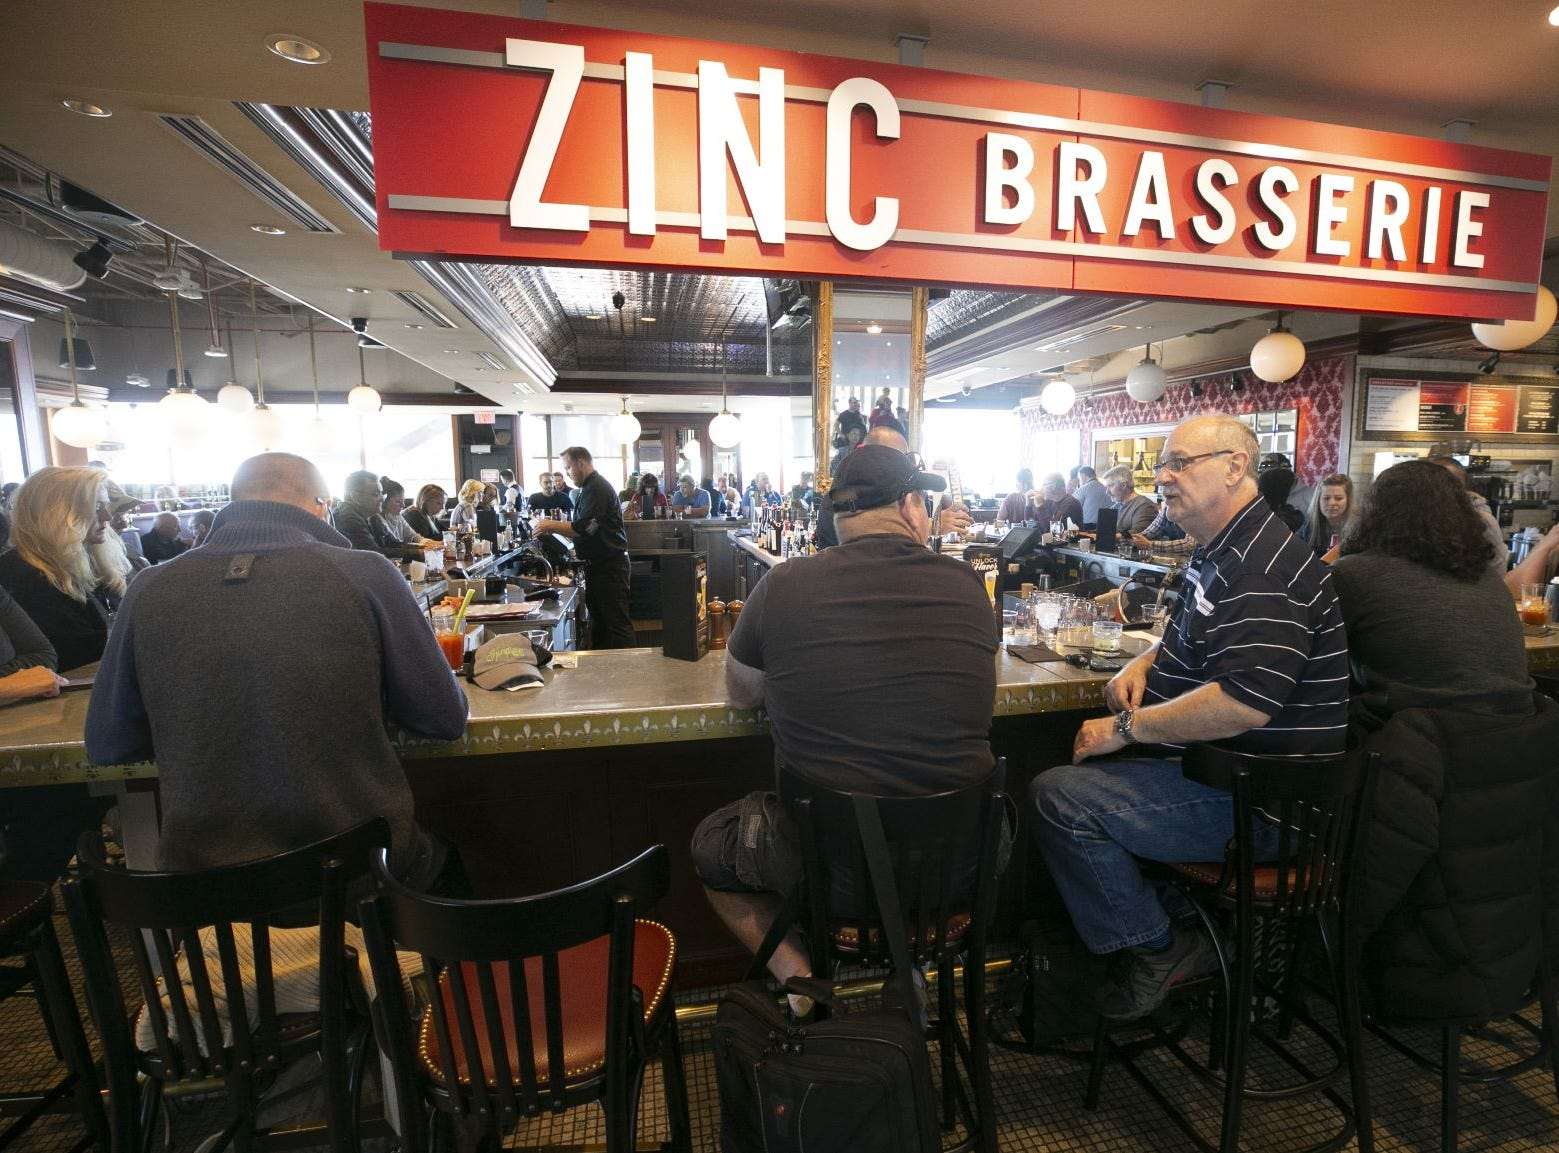 Travelers at Zinc Brasserie In Terminal Four of Phoenix Sky Harbor International Airport on Tuesday, November 13, 2018.